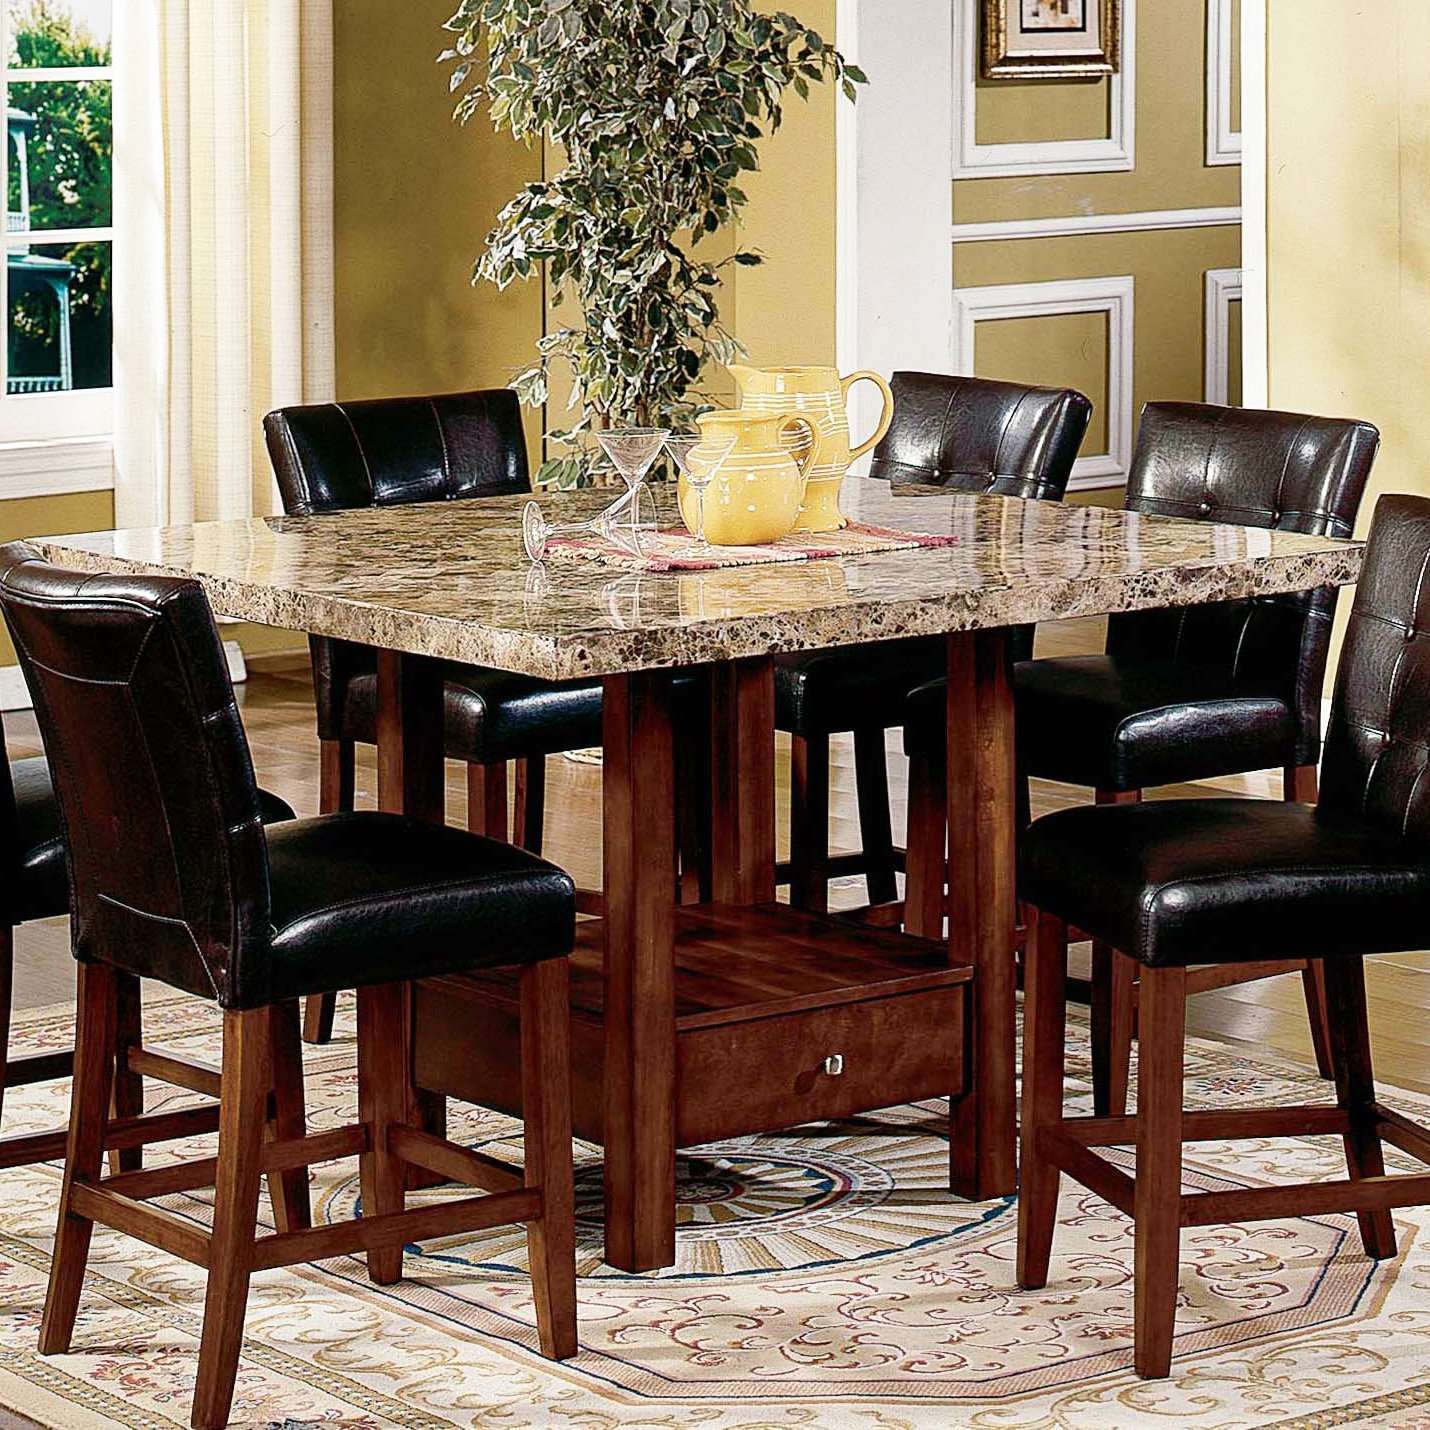 Raymour And Flanigan Kitchen Sets: Raymour And Flanigan Kitchen Dinette Sets